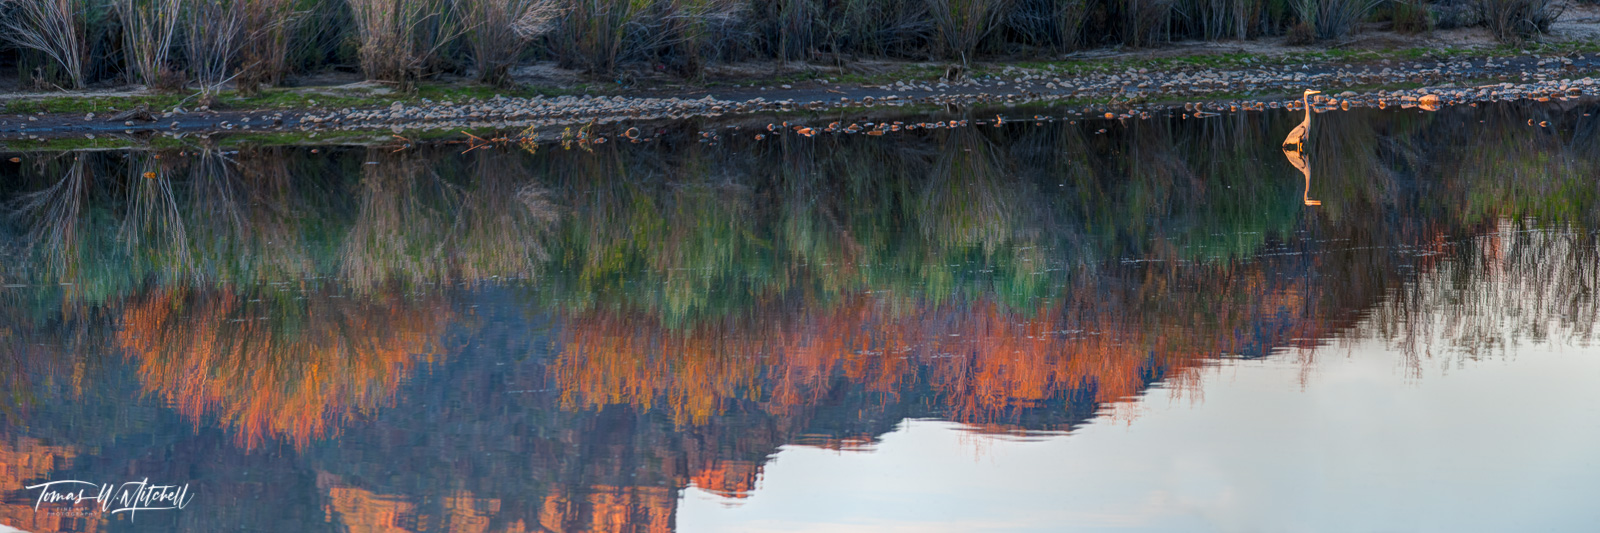 limited edition, fine art, prints, salt river, arizona, great blue heron, river, heron, photograph, reflection, red mountain, colors, bushes, panoramic, photo